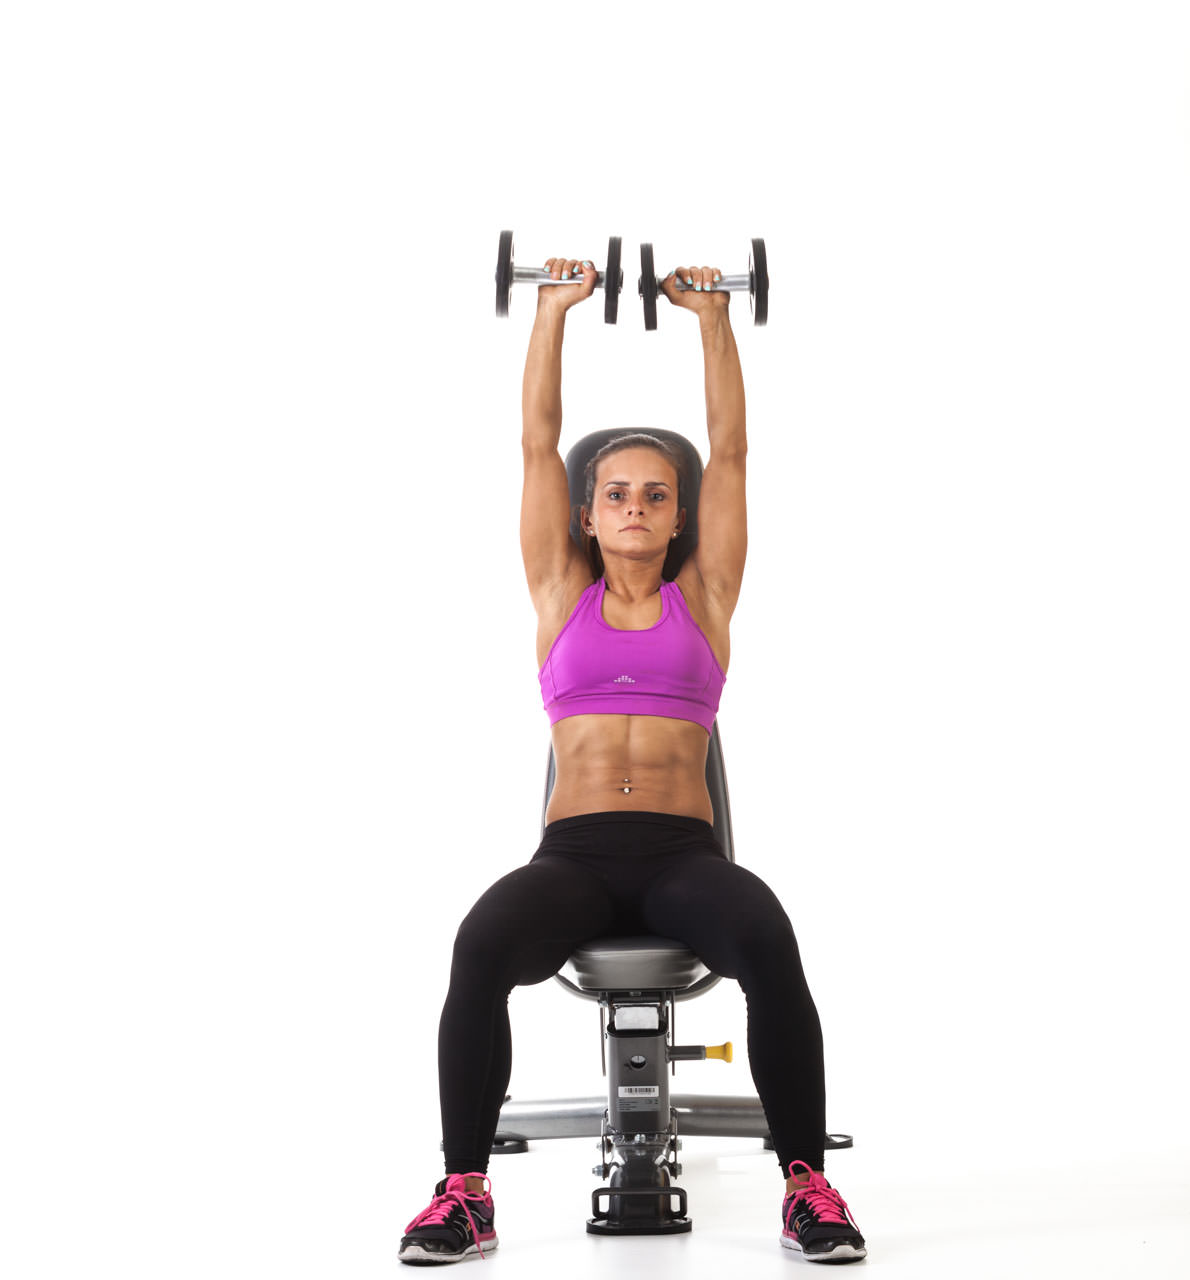 Seated Dumbbell Press (Bench) frame #2